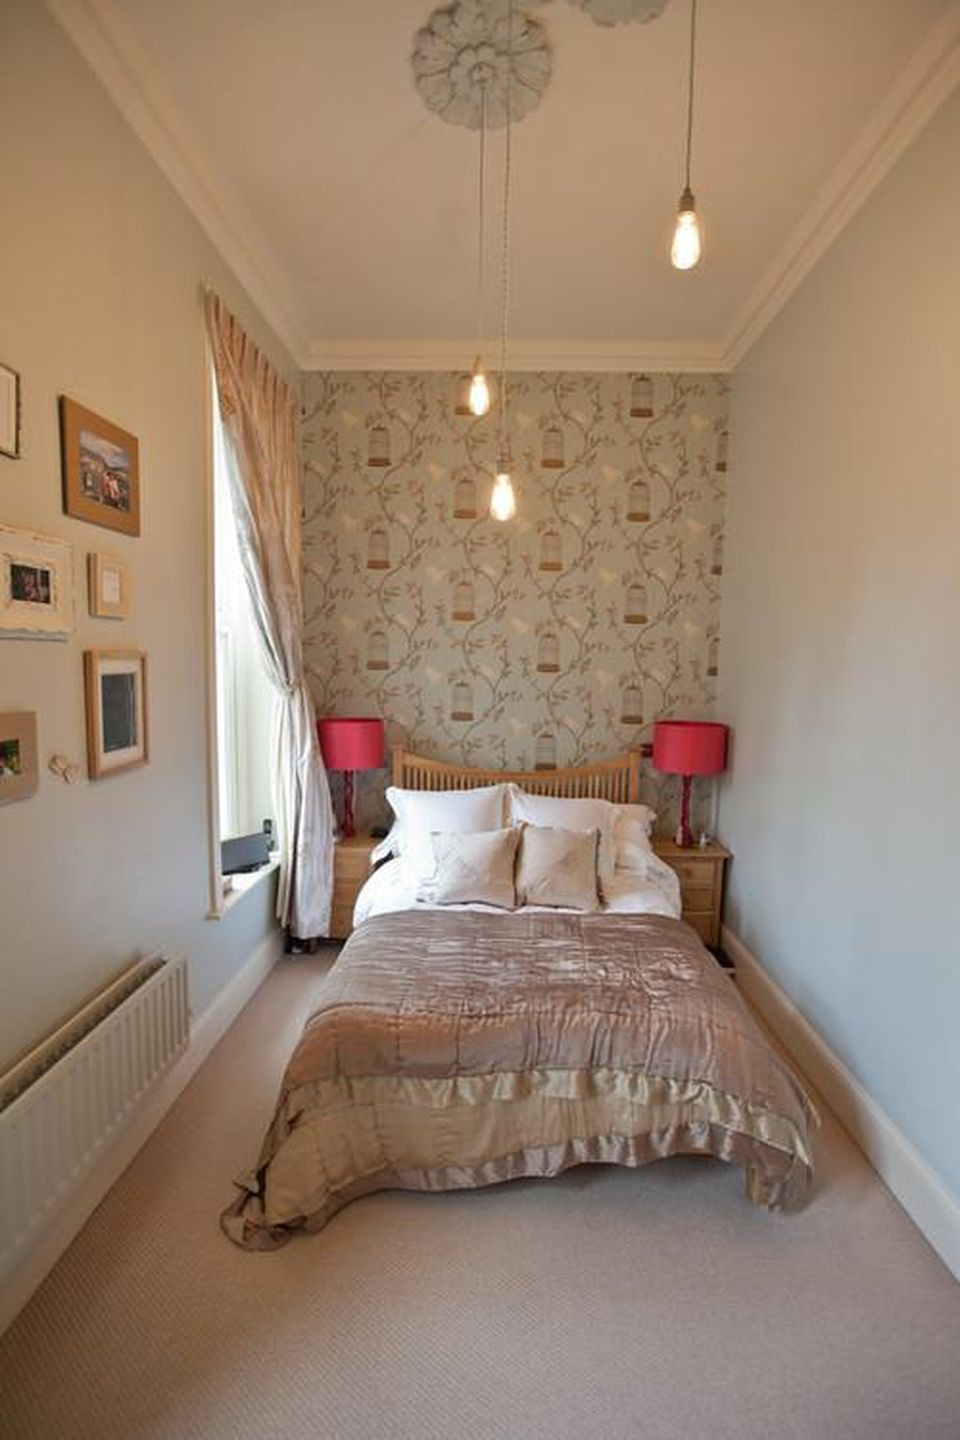 s blogs imagesrbes houzz files 2014 10 contemporary bedroom2